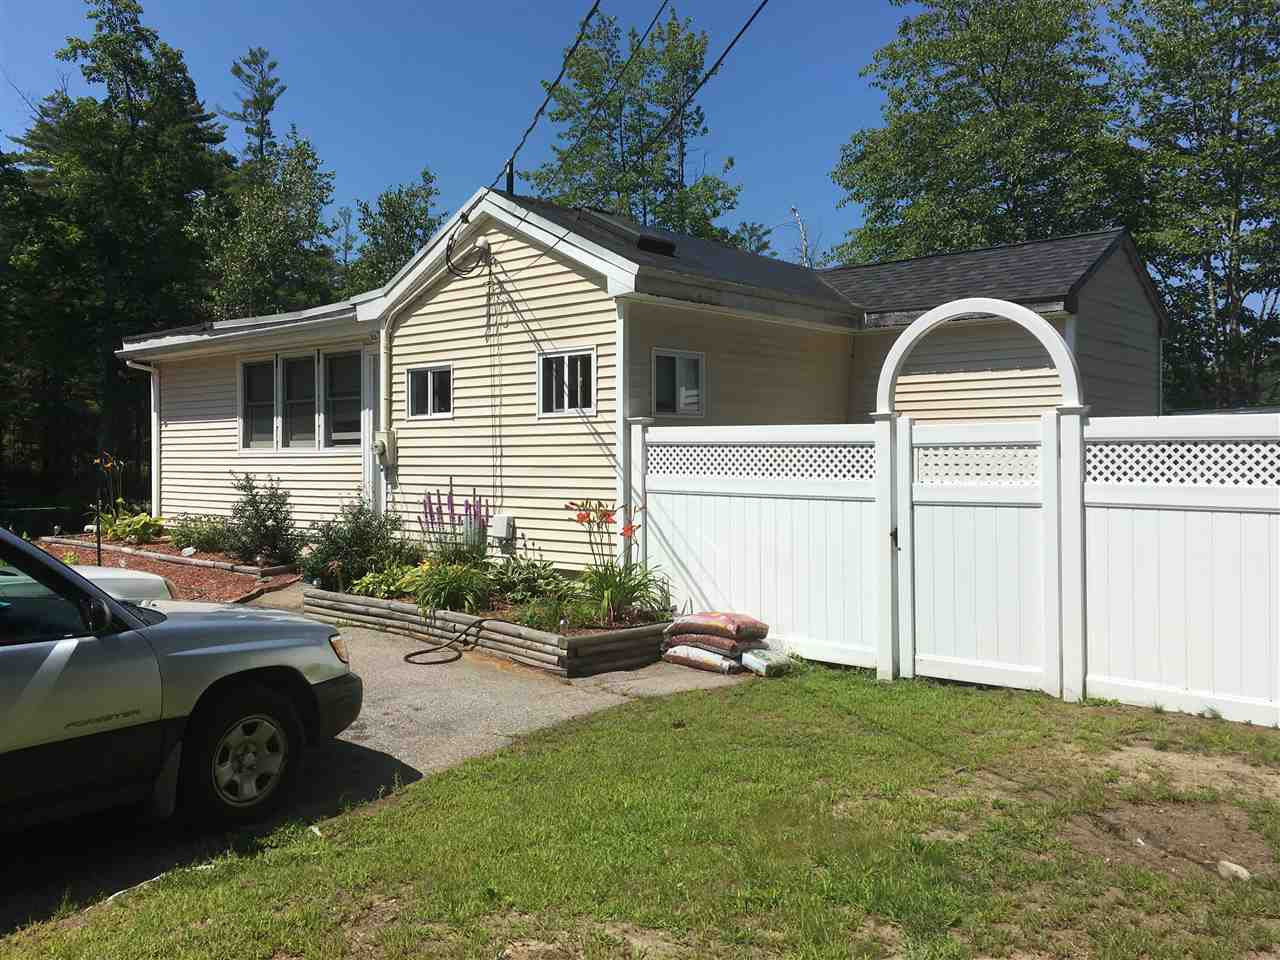 NEW DURHAM NH  Home for sale $239,900